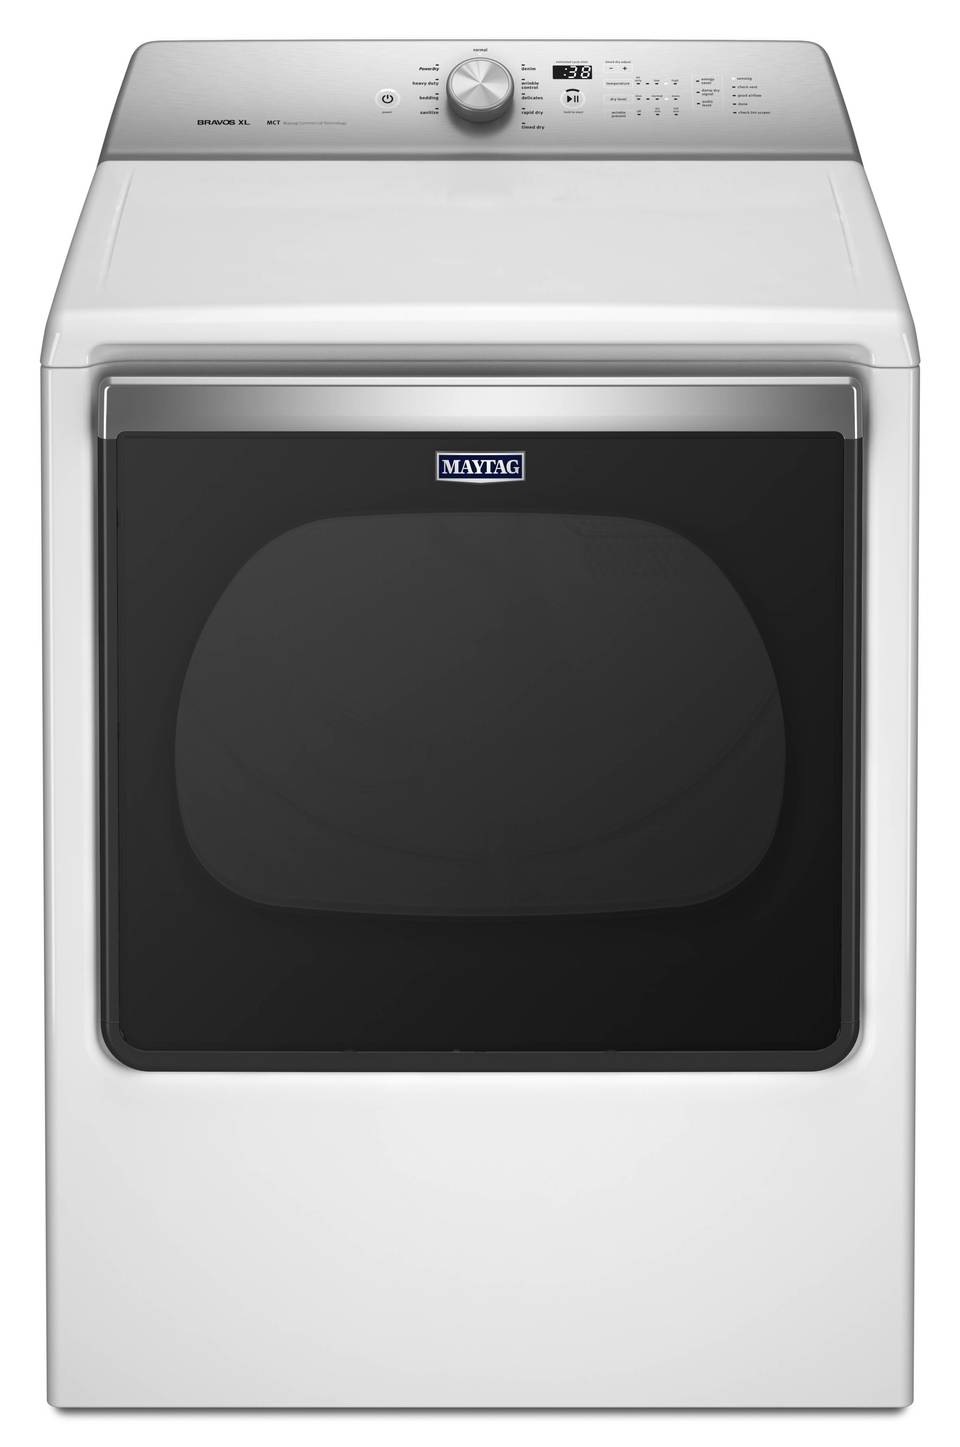 Maytag 8 8 cu ft Gas Dryer  White. Shop Dryers at Lowes com